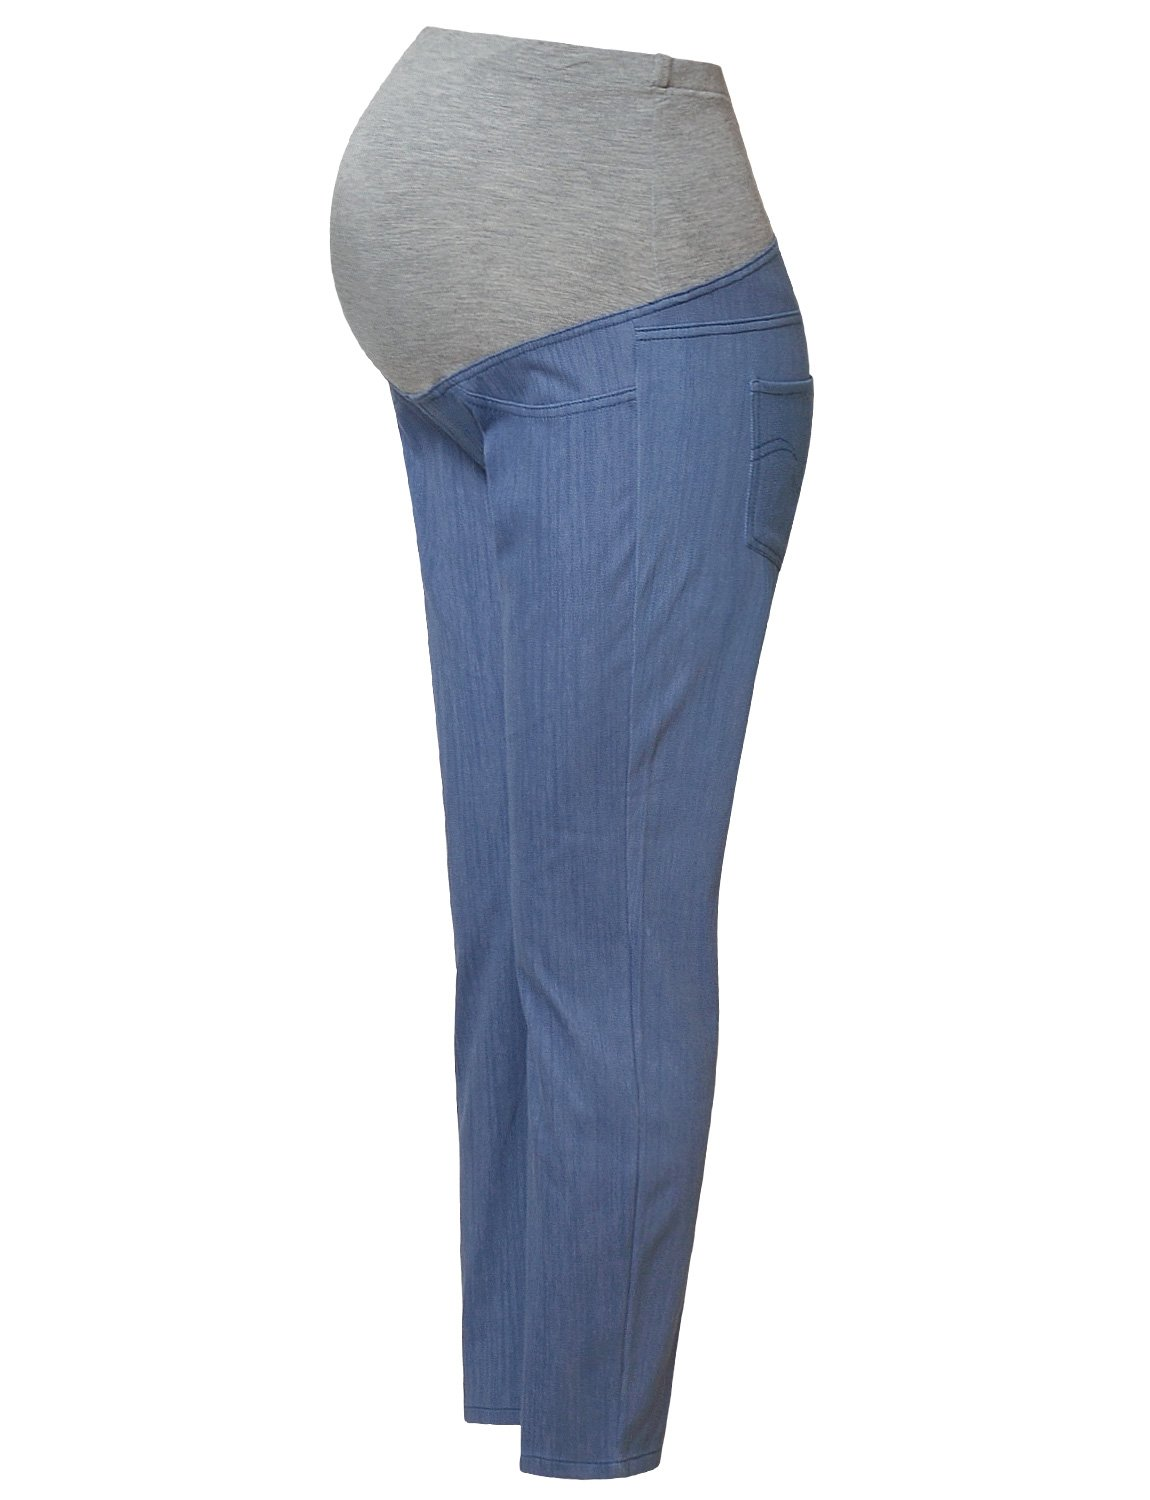 Maternity Jeans Pants Over The Belly Leggings Stretchy Skinny Leg Pants Blue Jeans S